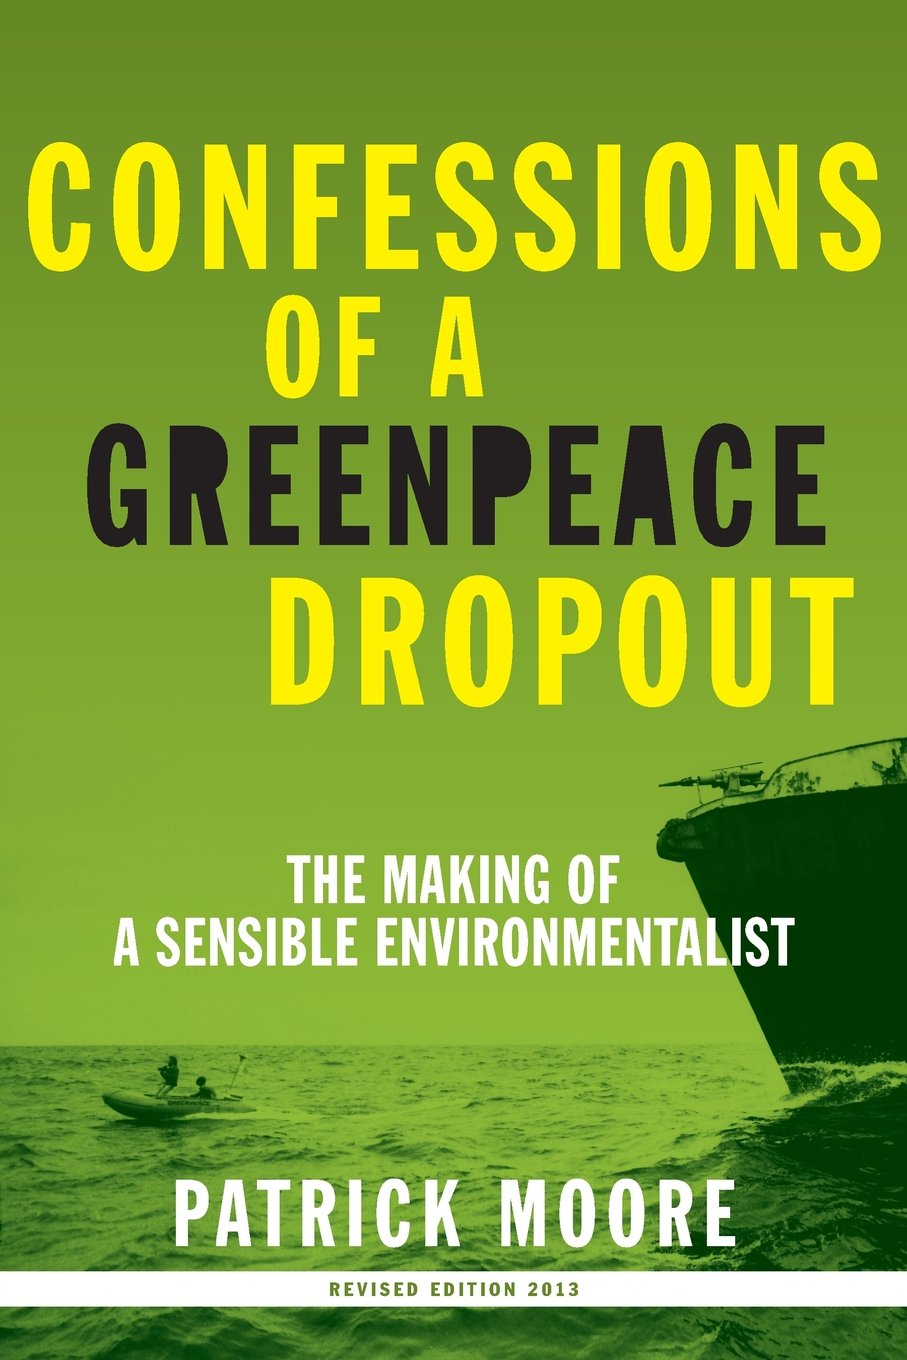 Confessions of a Greenpeace Dropout: The Making of a Sensible Environmentalist by Brand: Beatty Street Publishing, Inc.